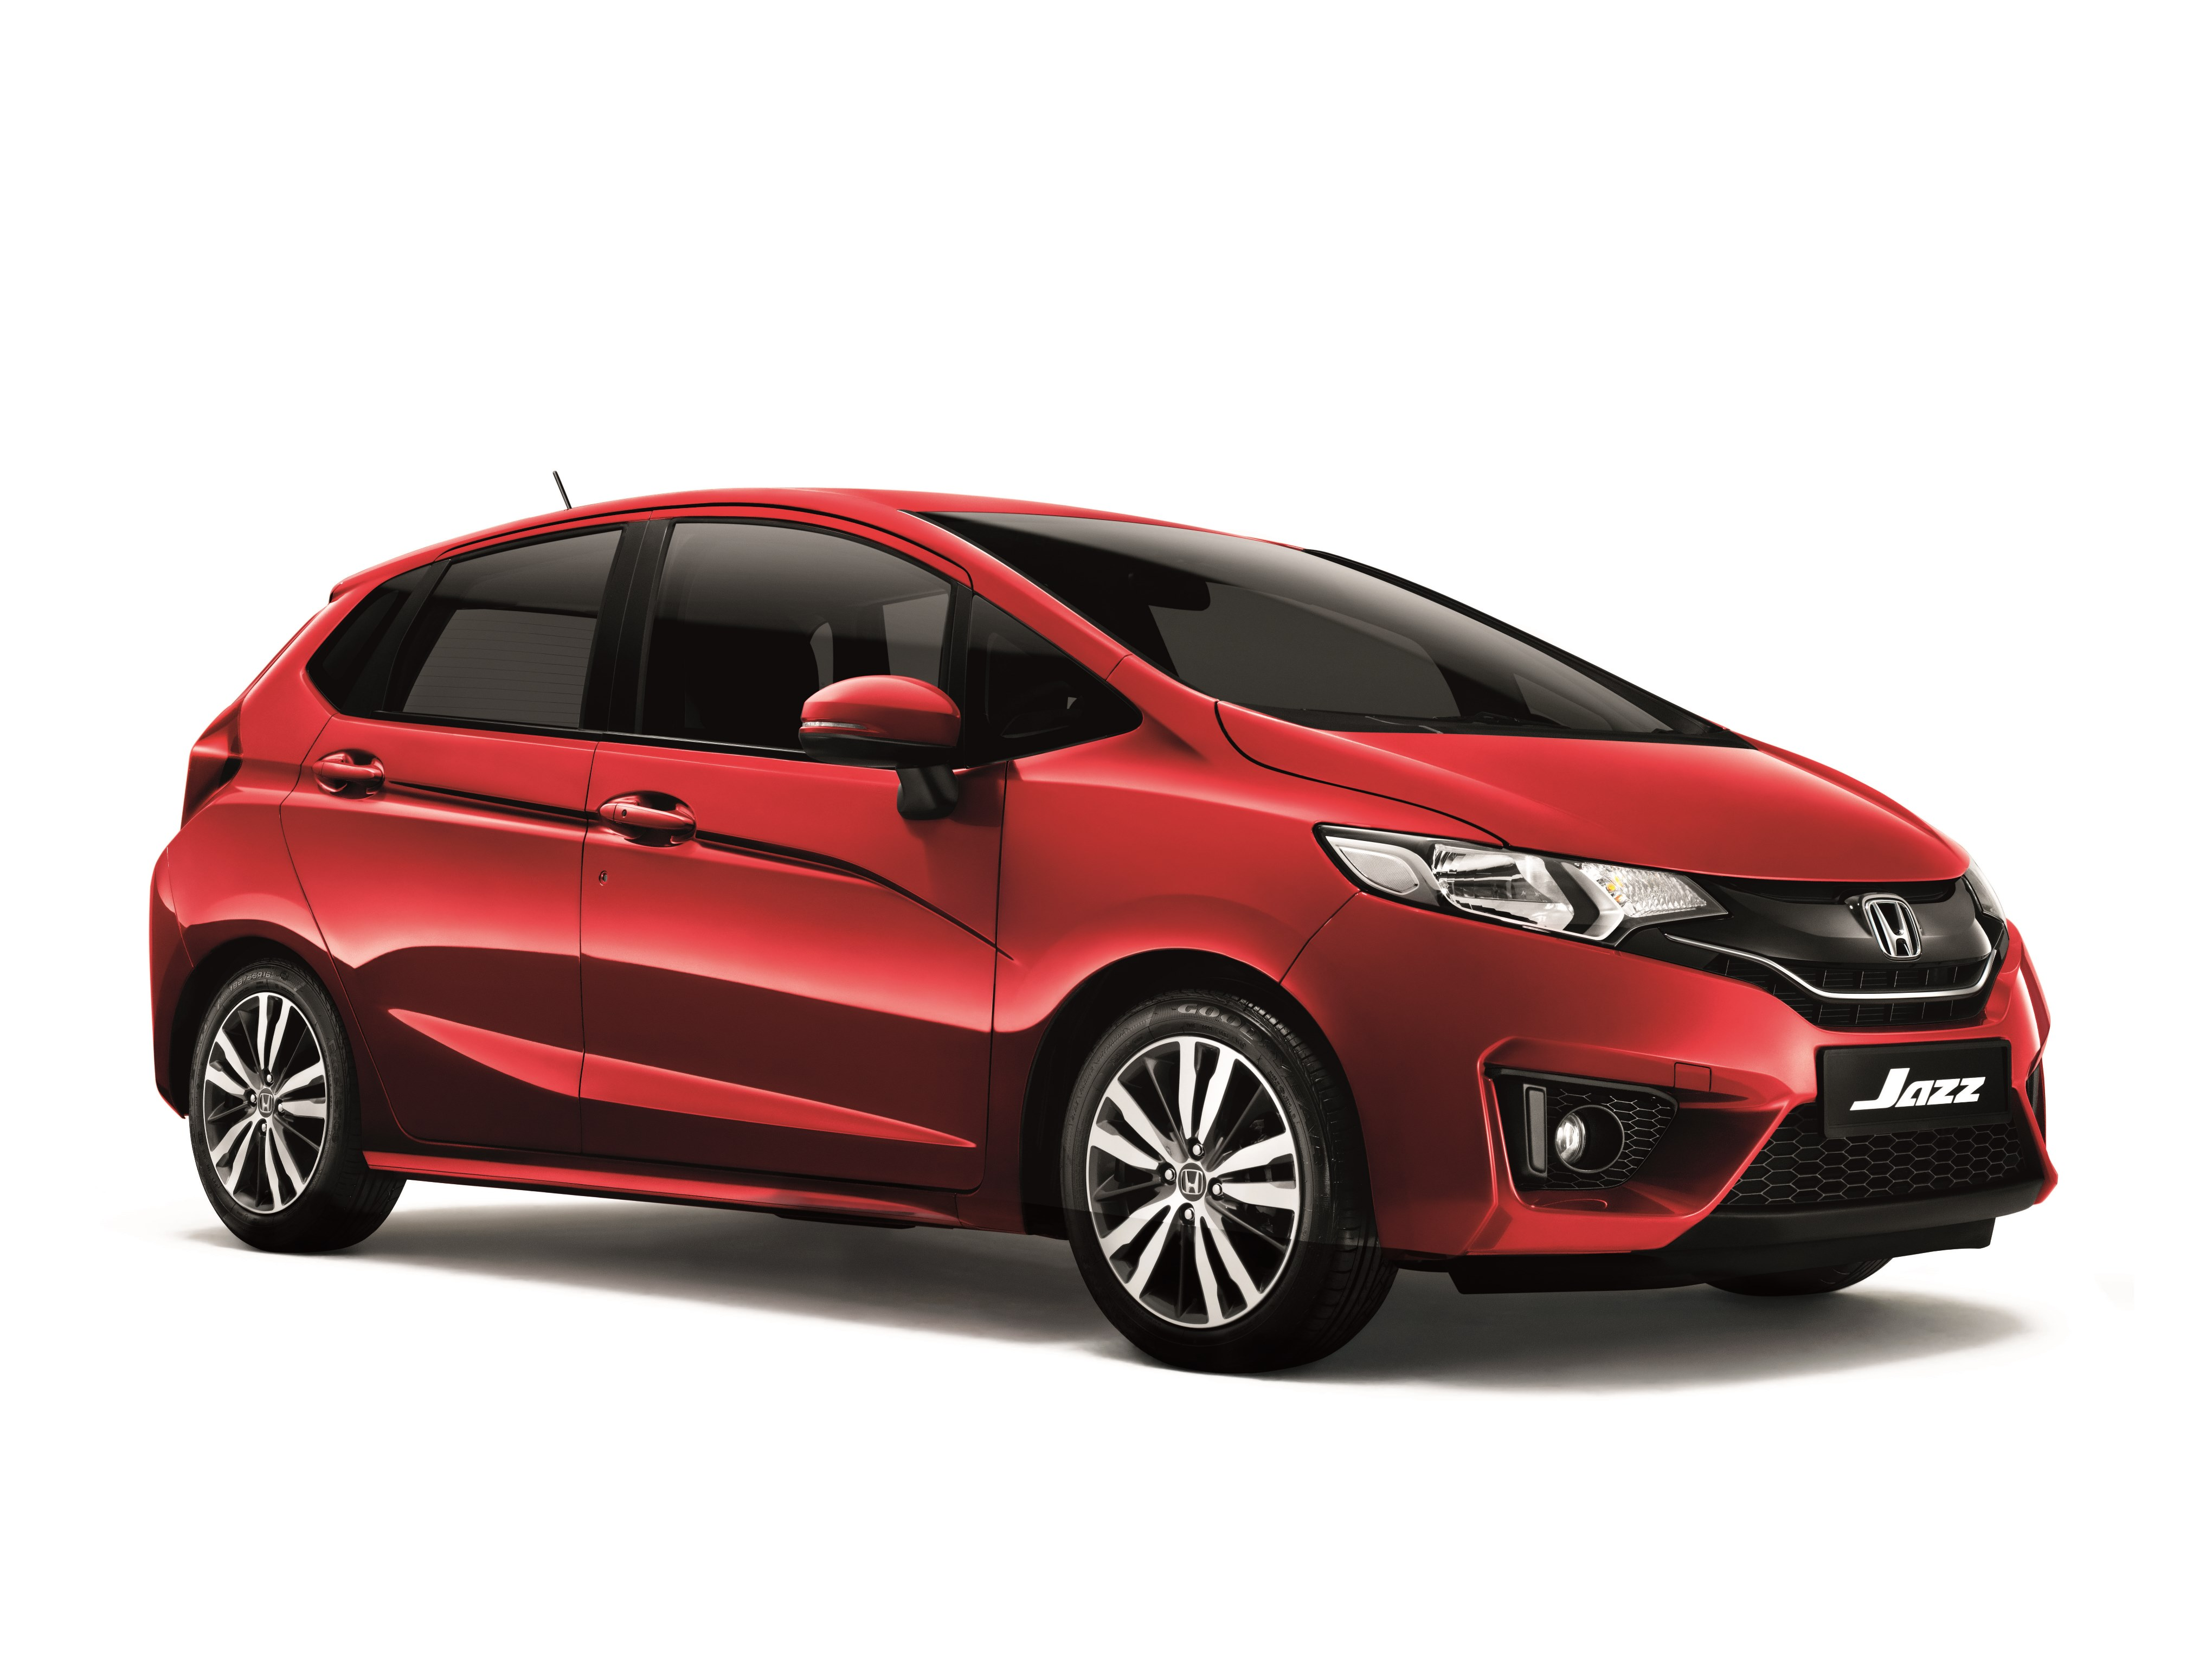 Honda Jazz accessories 2017